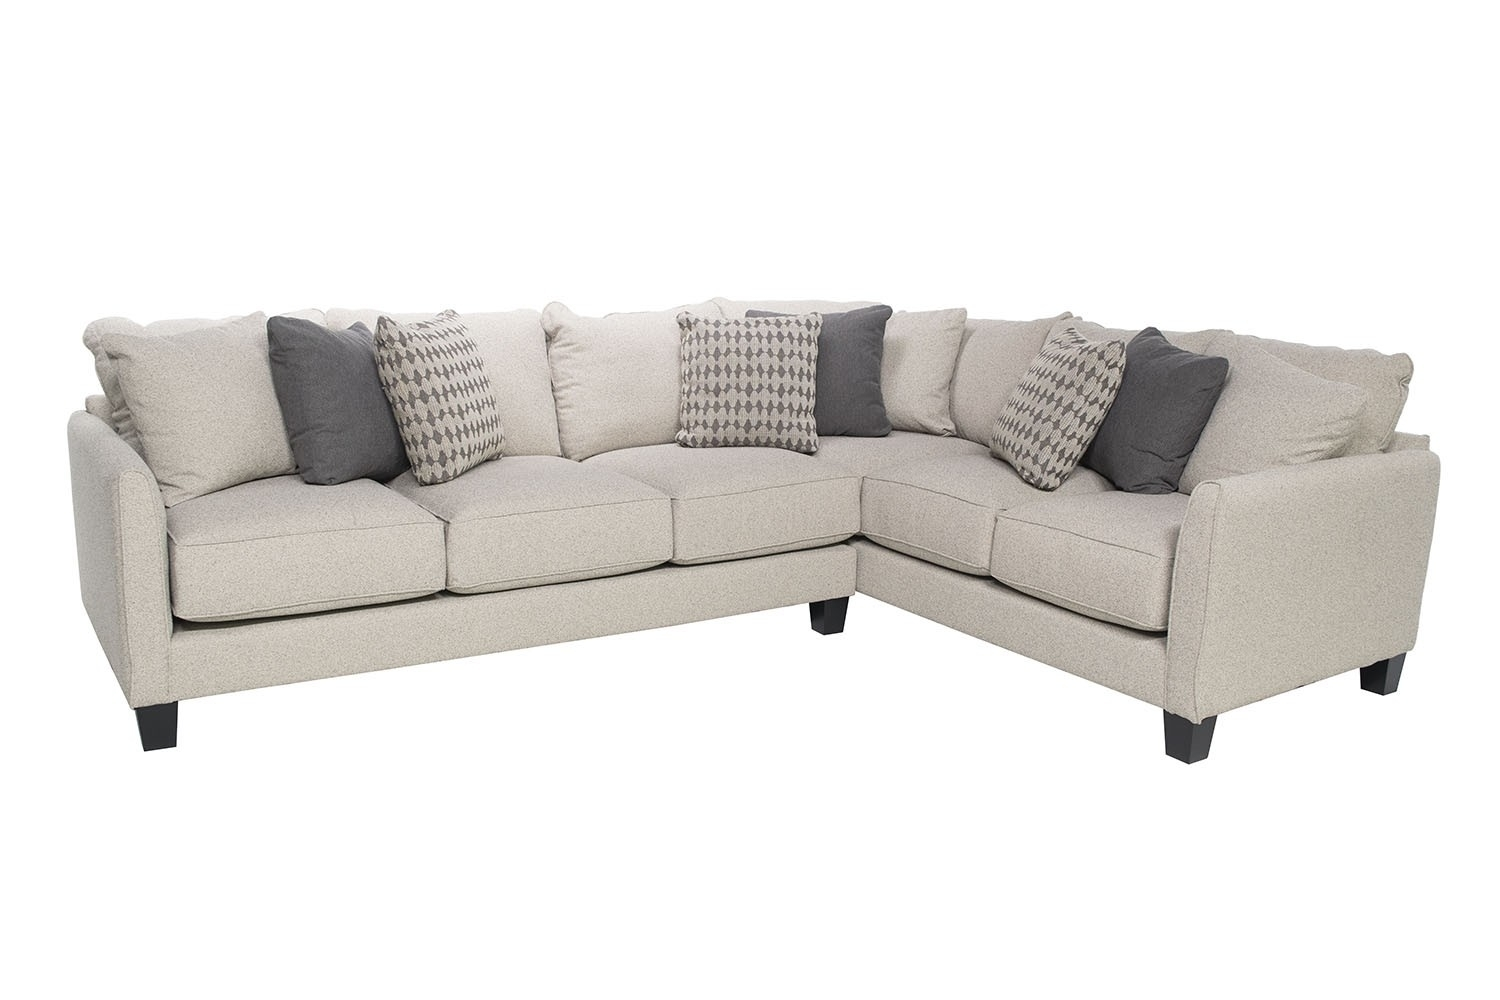 Sectional Sofas | Save Mor Online And In Store With Regard To Marcus Chocolate 6 Piece Sectionals With Power Headrest And Usb (View 9 of 25)